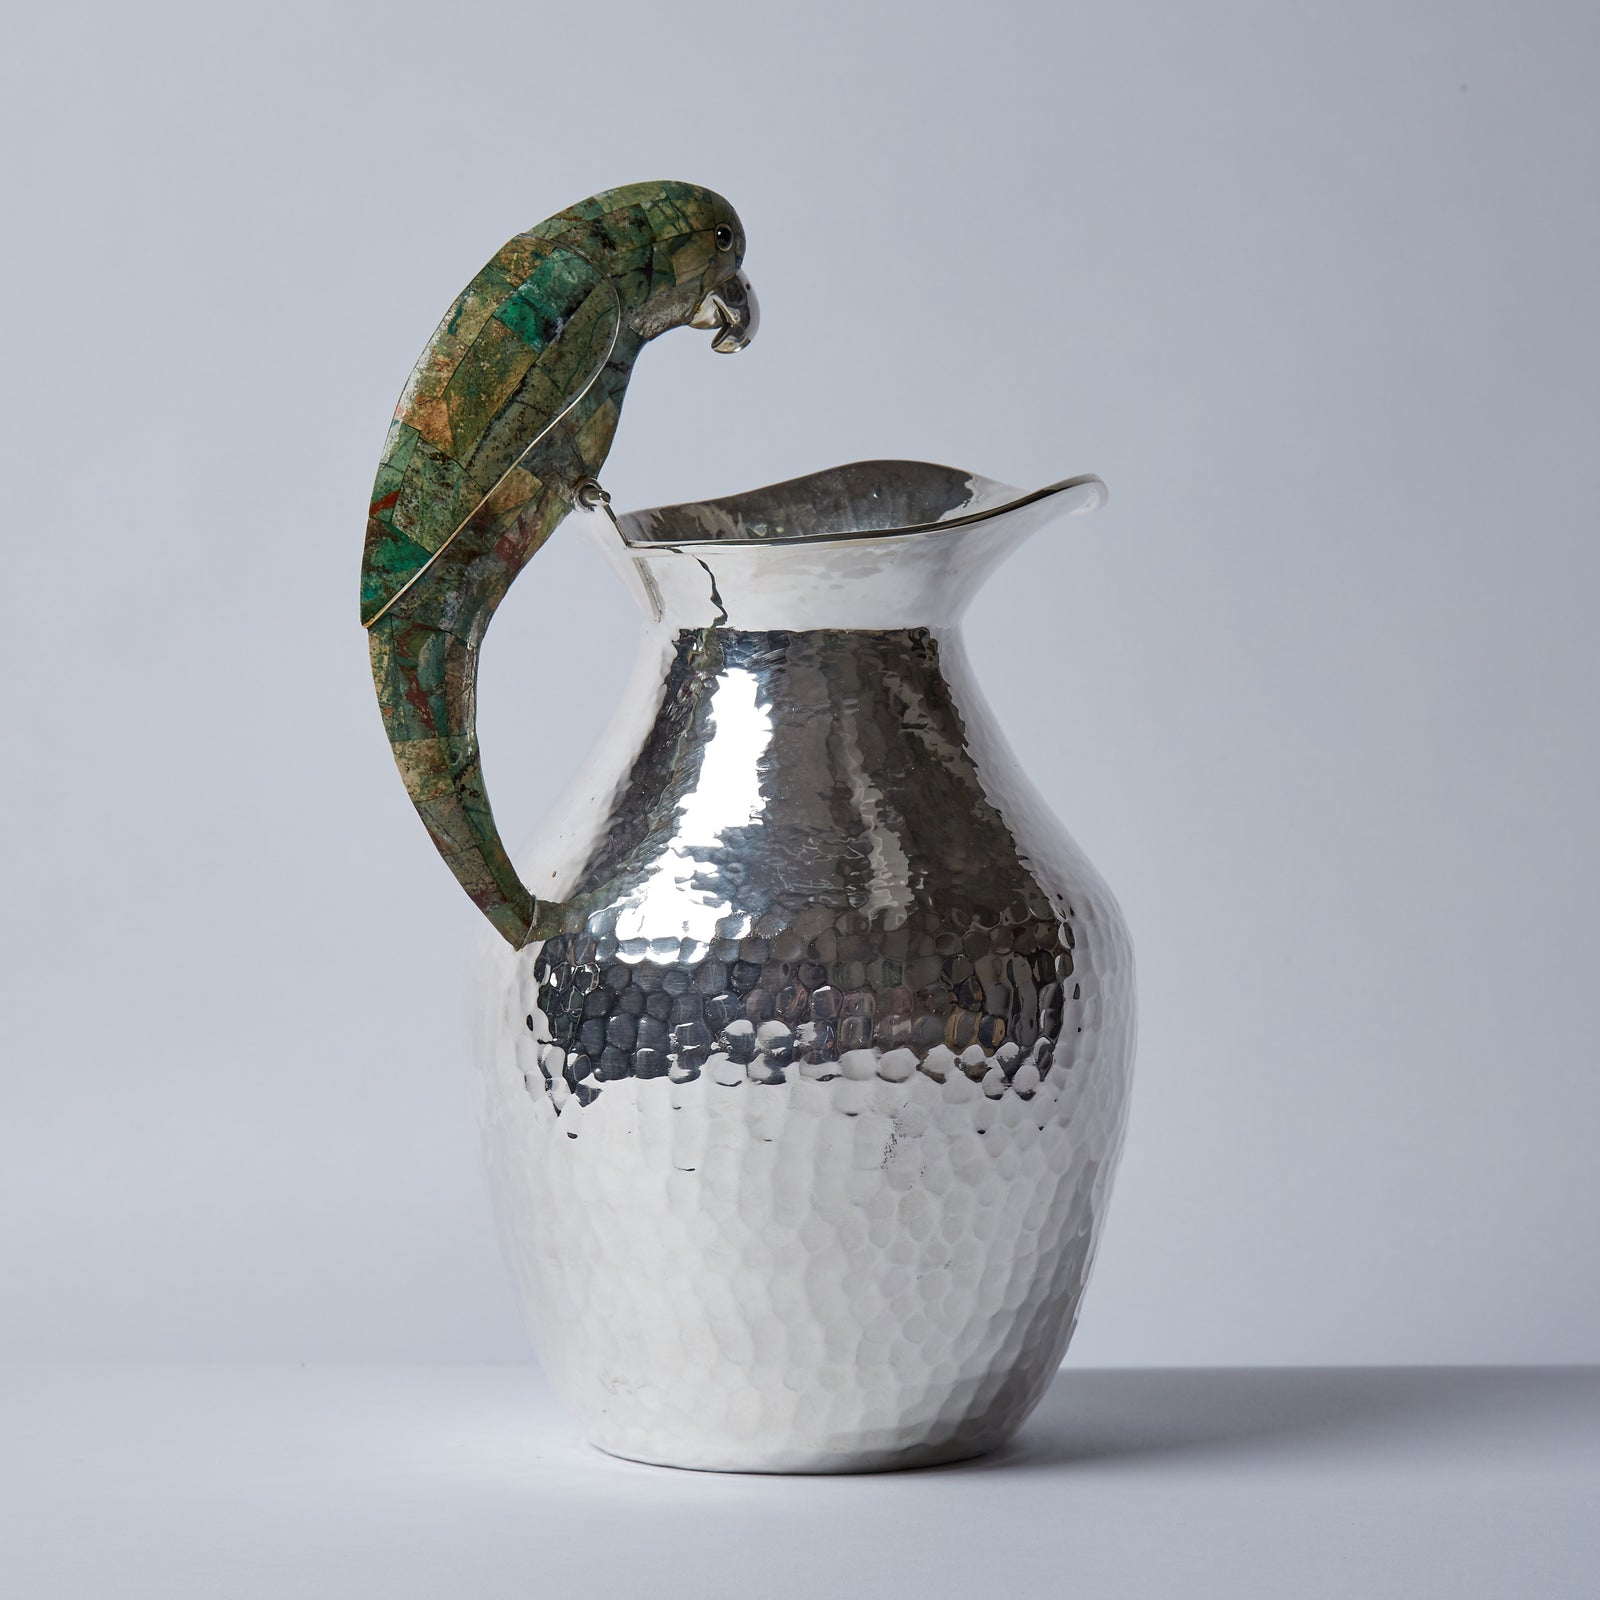 A peacefully perching parrot, mosaicked in malachite stone, with it's tong curved bill and beady eyes, enriches this splendid jug.